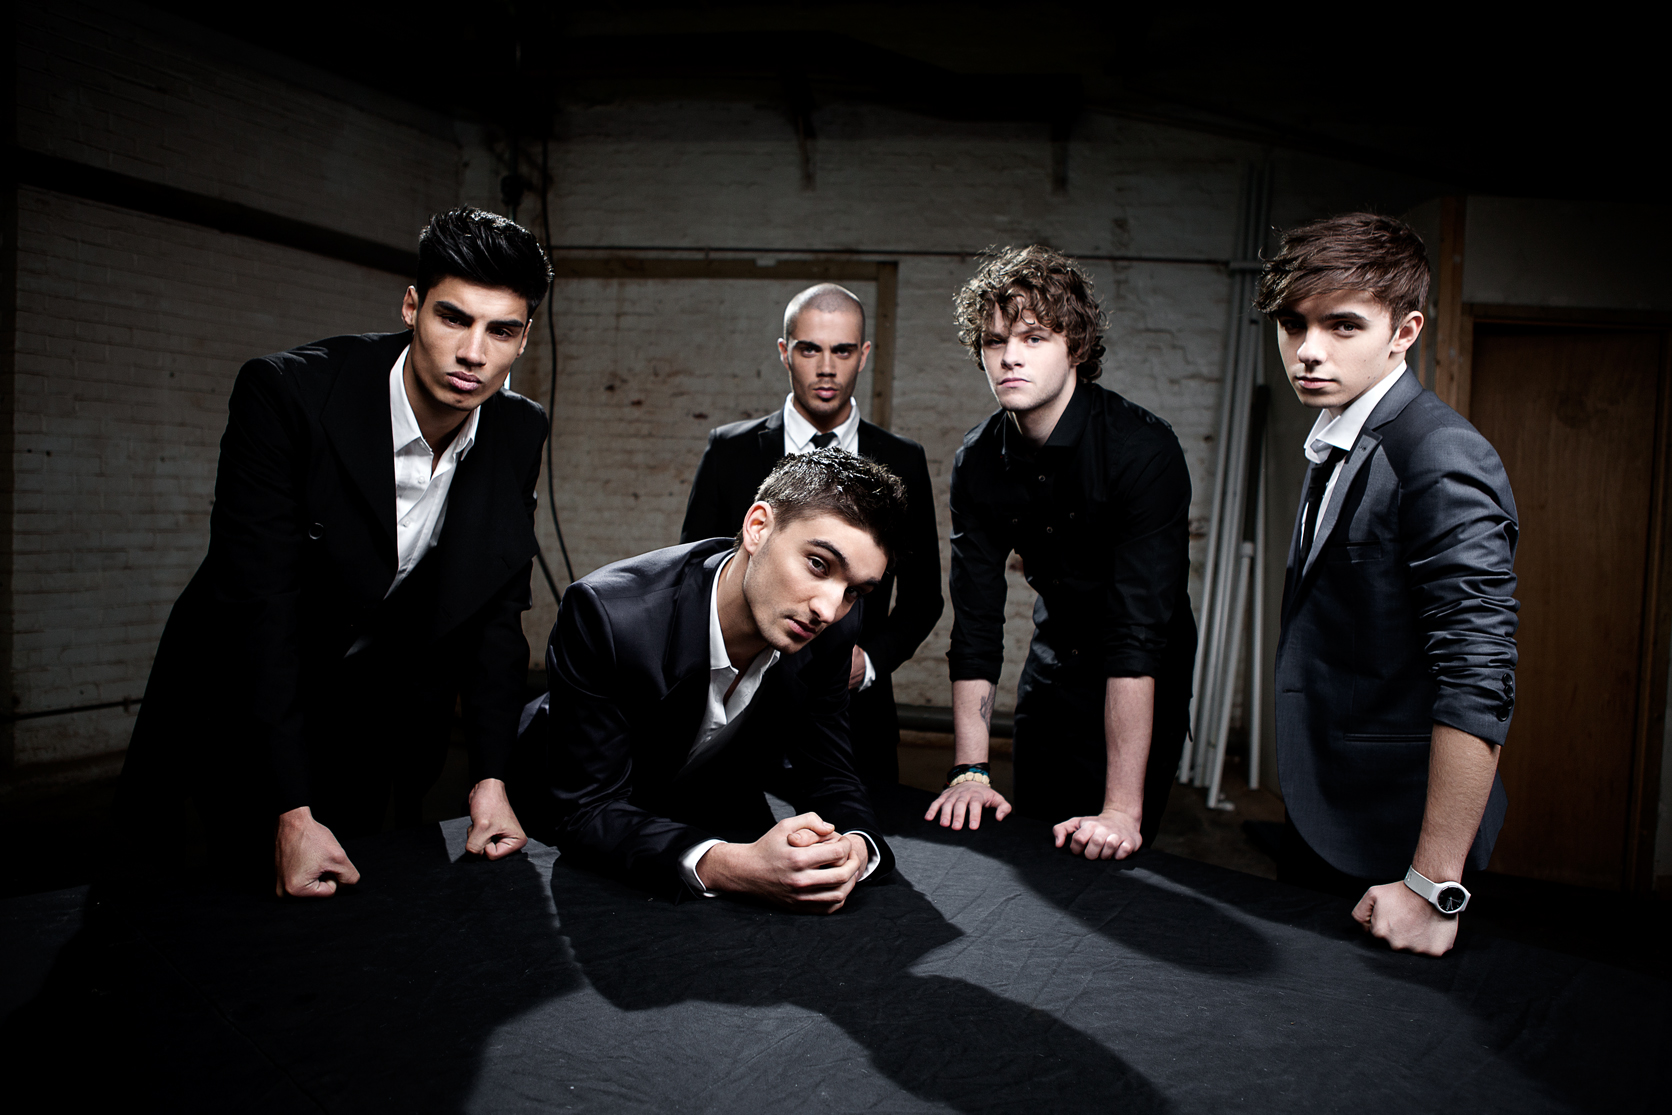 The Wanted are at the LG Arena in Birmingham in March, 2012